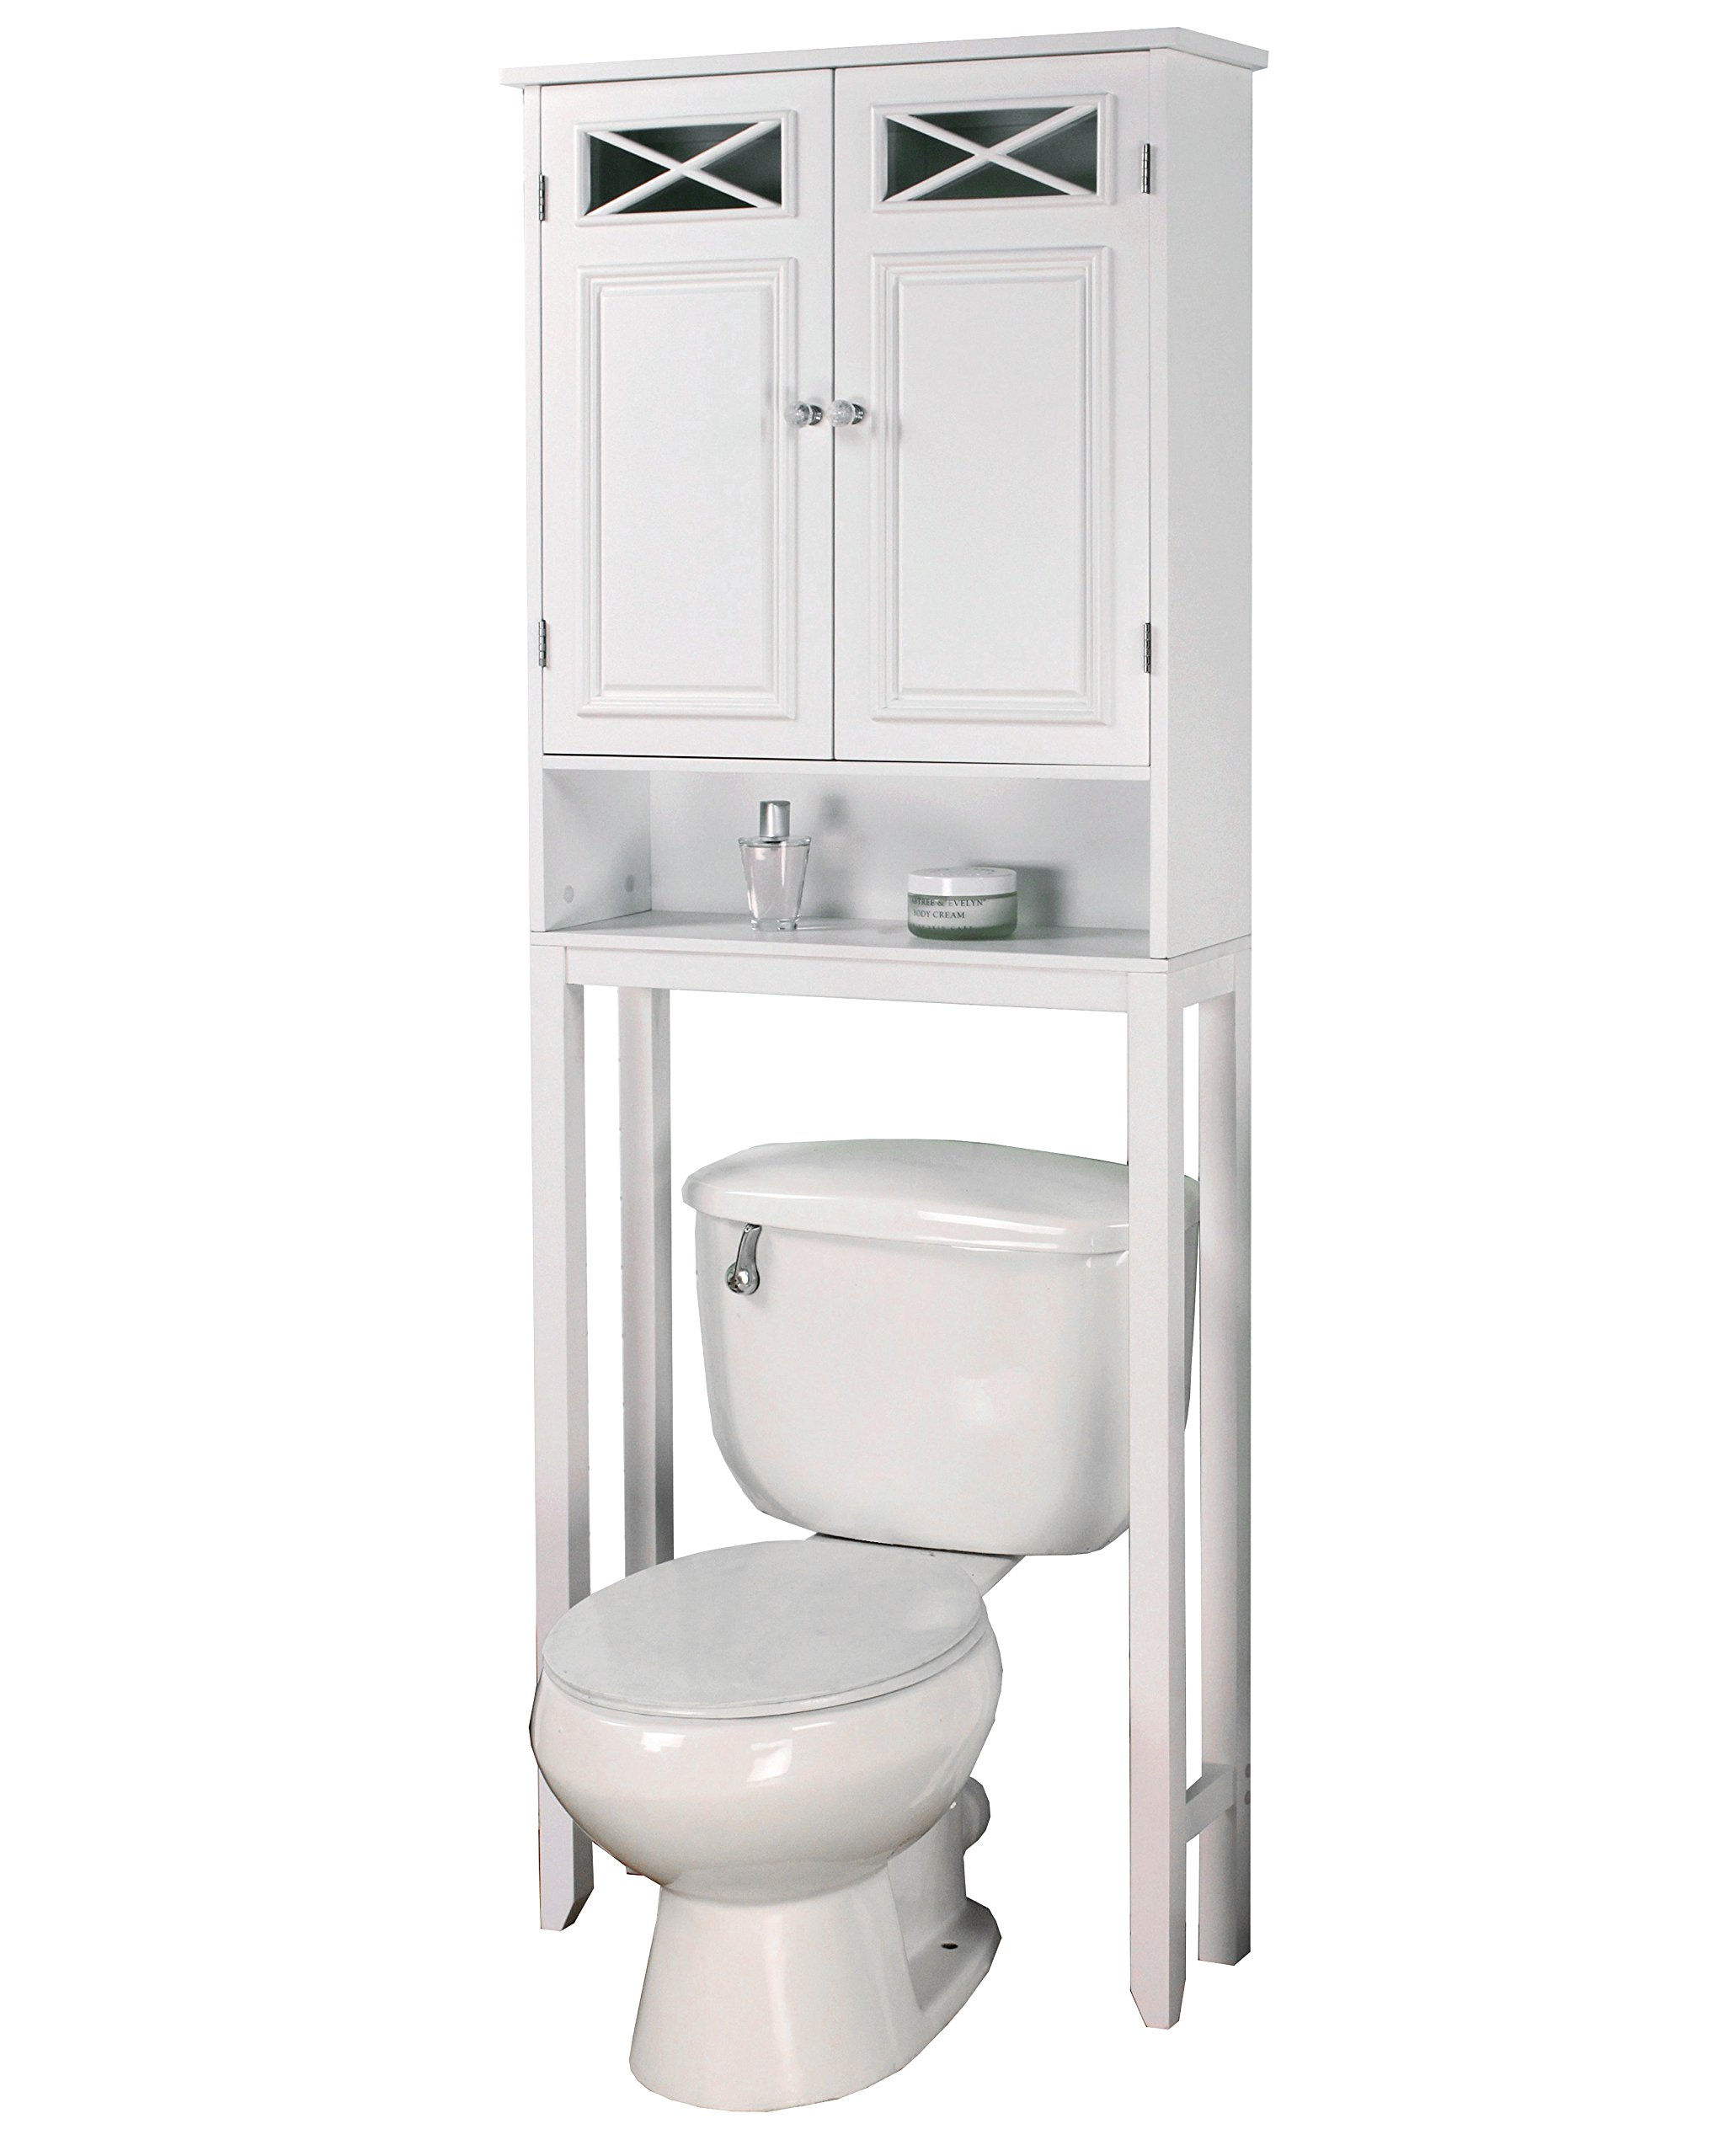 Elegant Home Fashions Dawson Collection Shelved Bathroom Space-Saver with Storage Cubby, White by Elegant Home Fashions (Image #3)